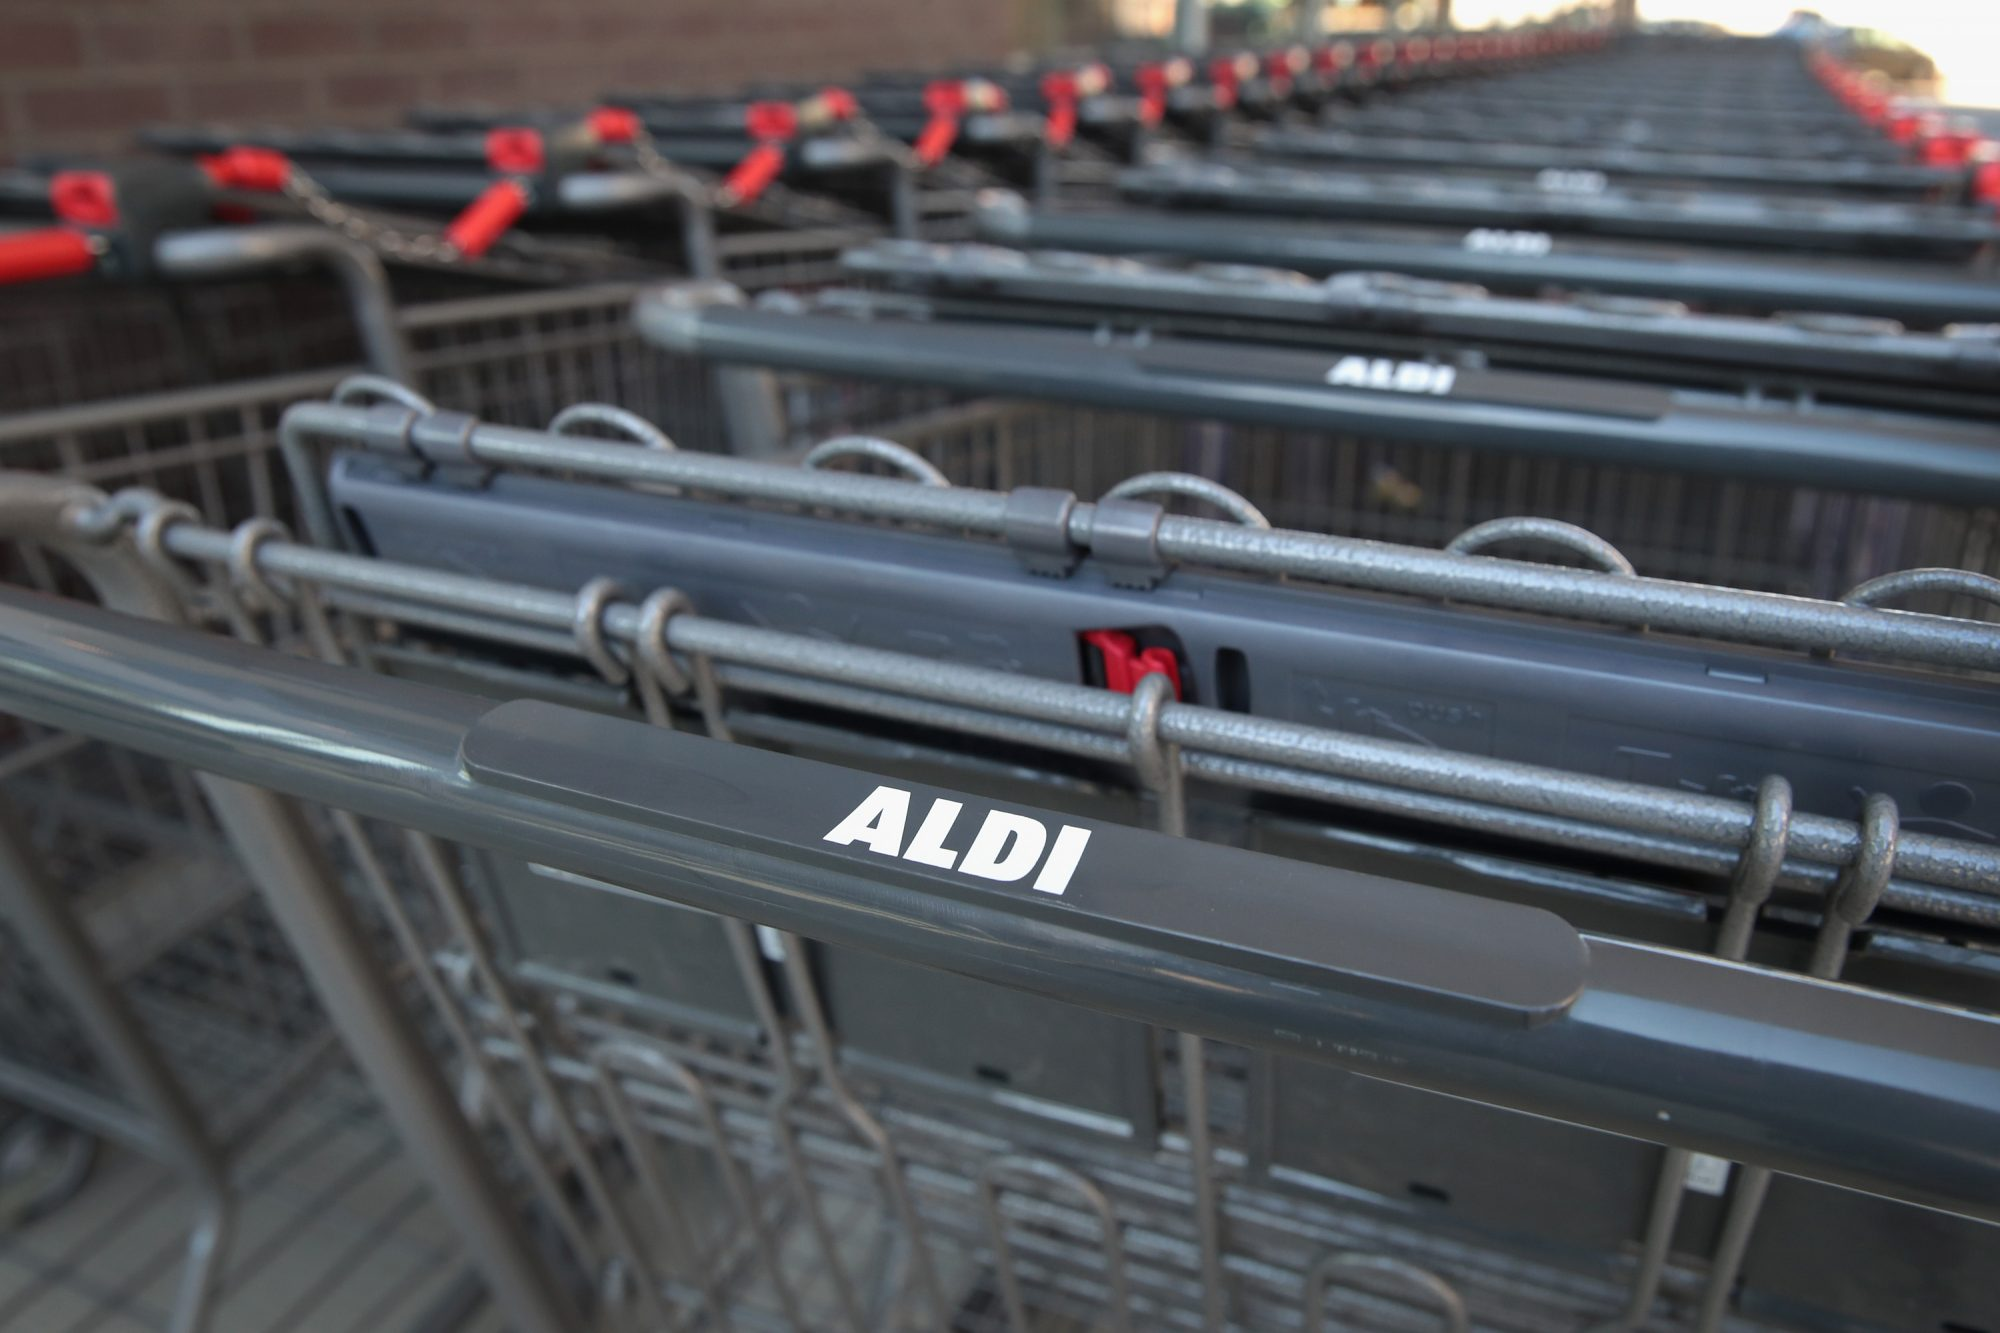 Aldi carts Getty 9/24/20